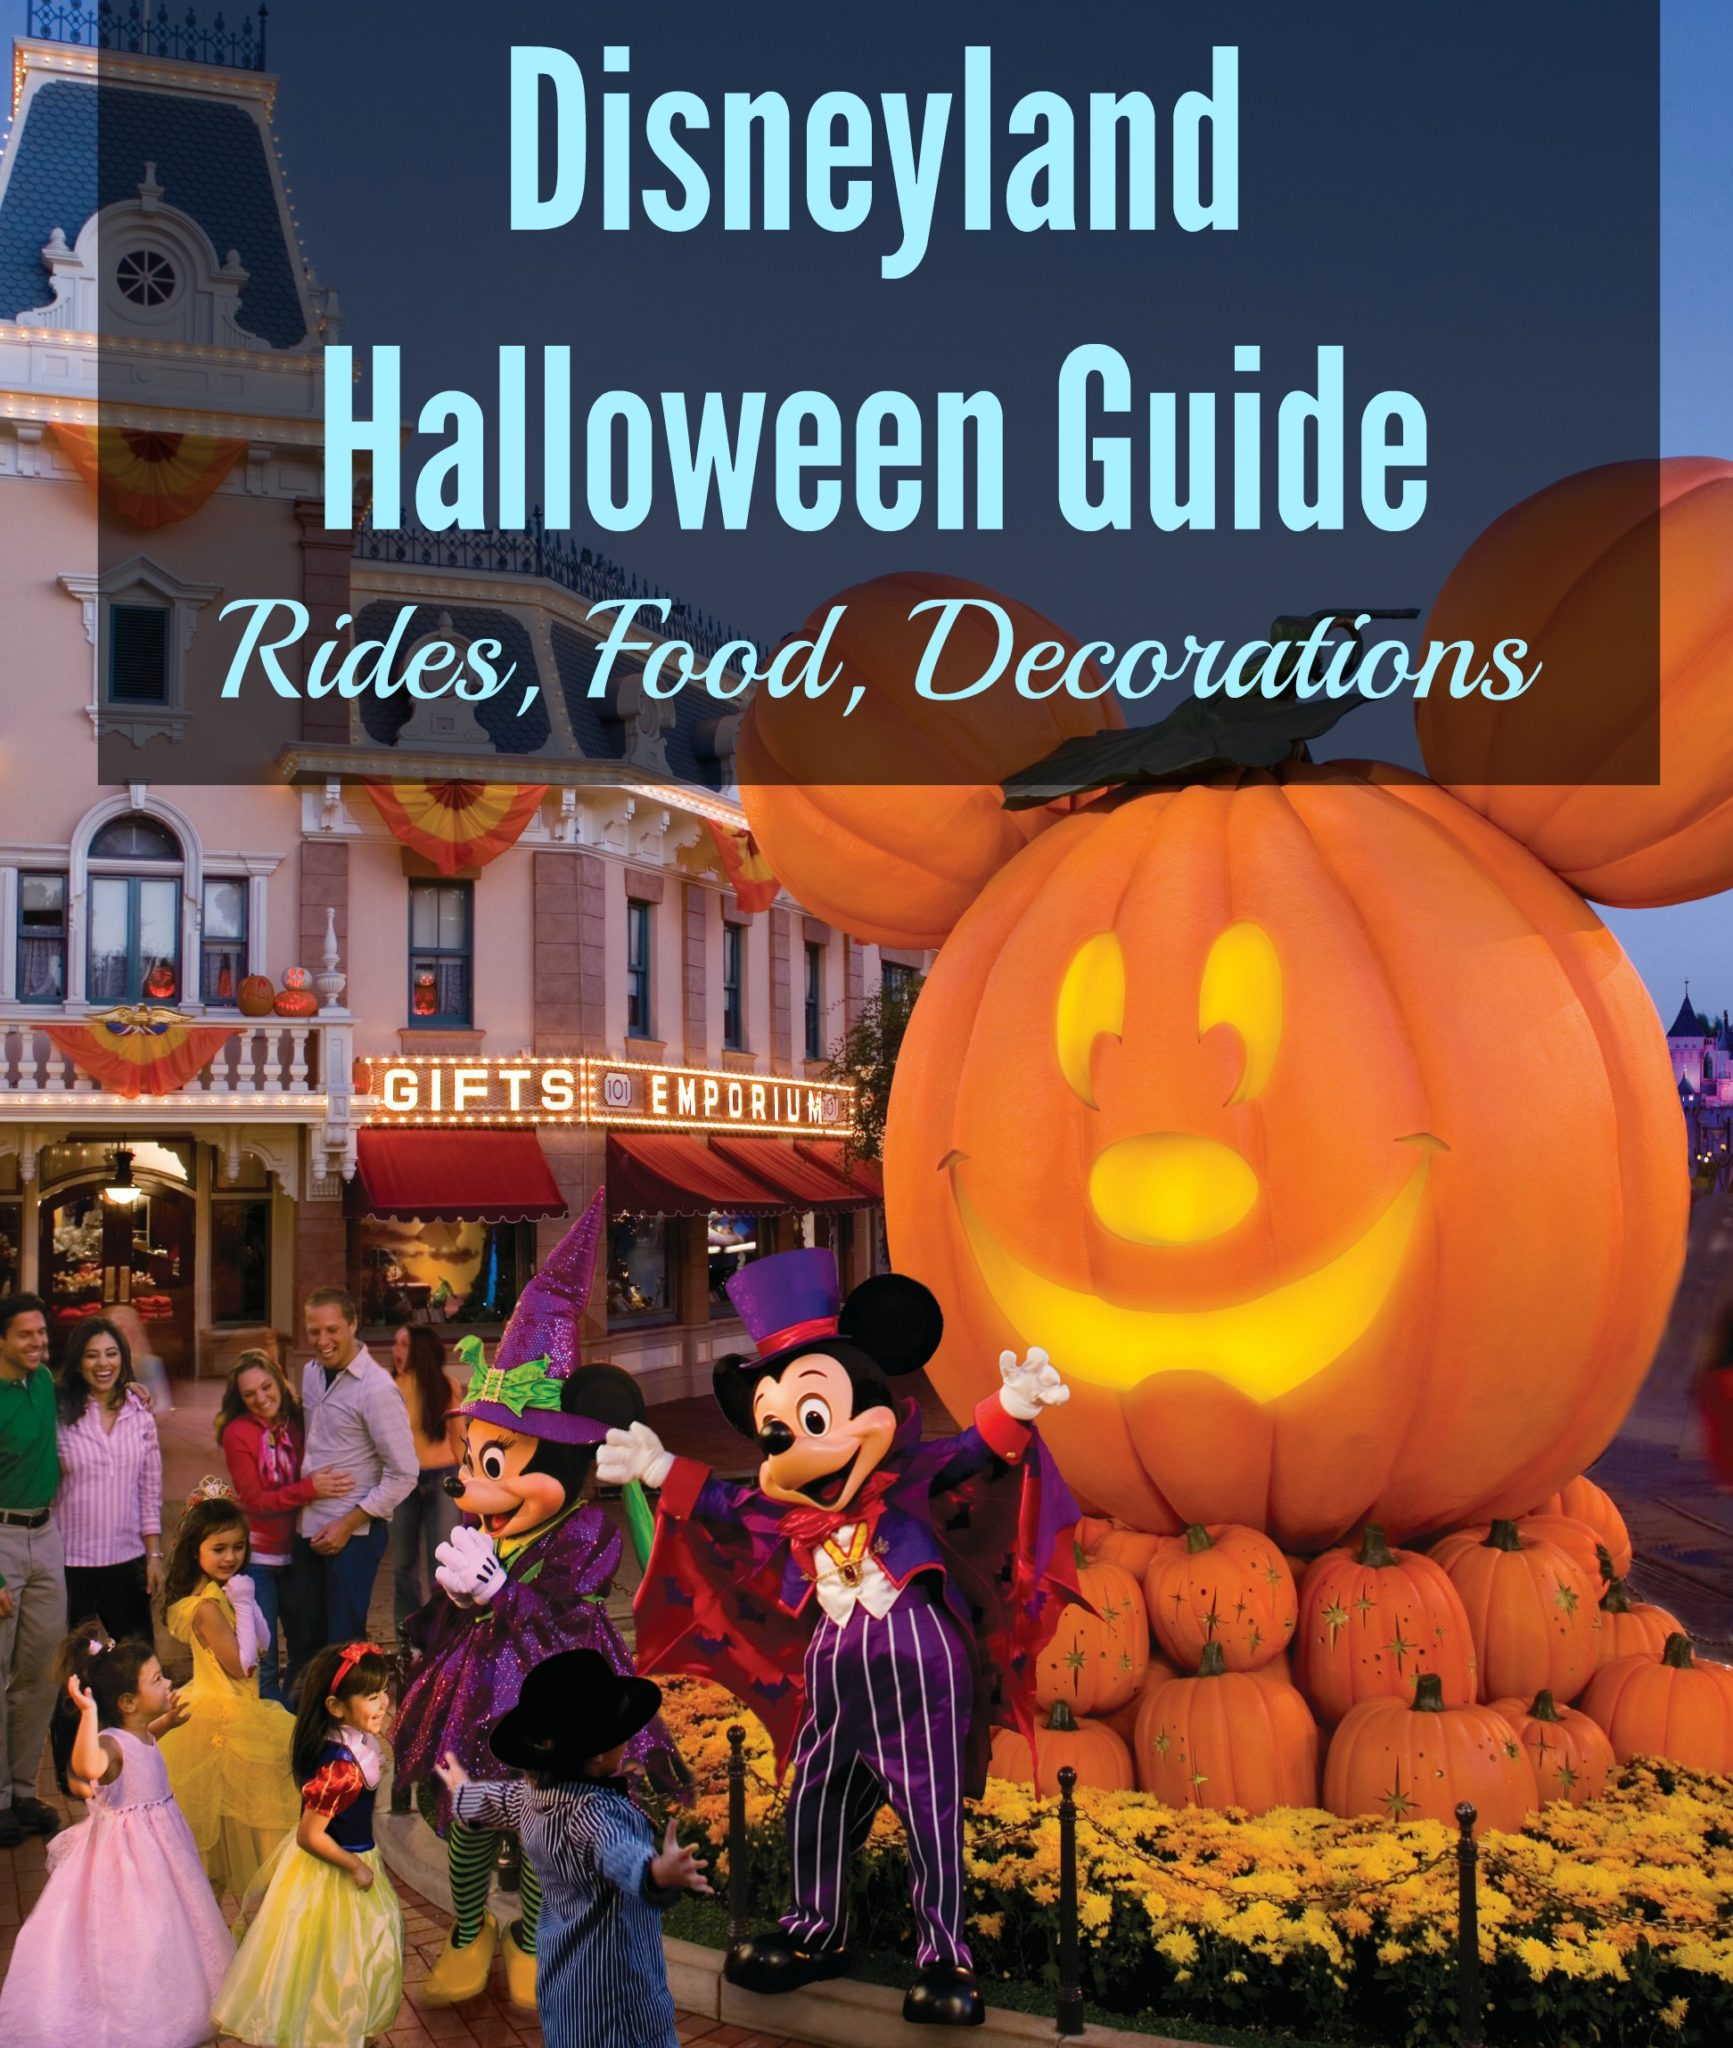 Disneyland Halloween 2020 Purchase Time Disneyland Halloween 2020 Guide: Rides, Food, Decorations